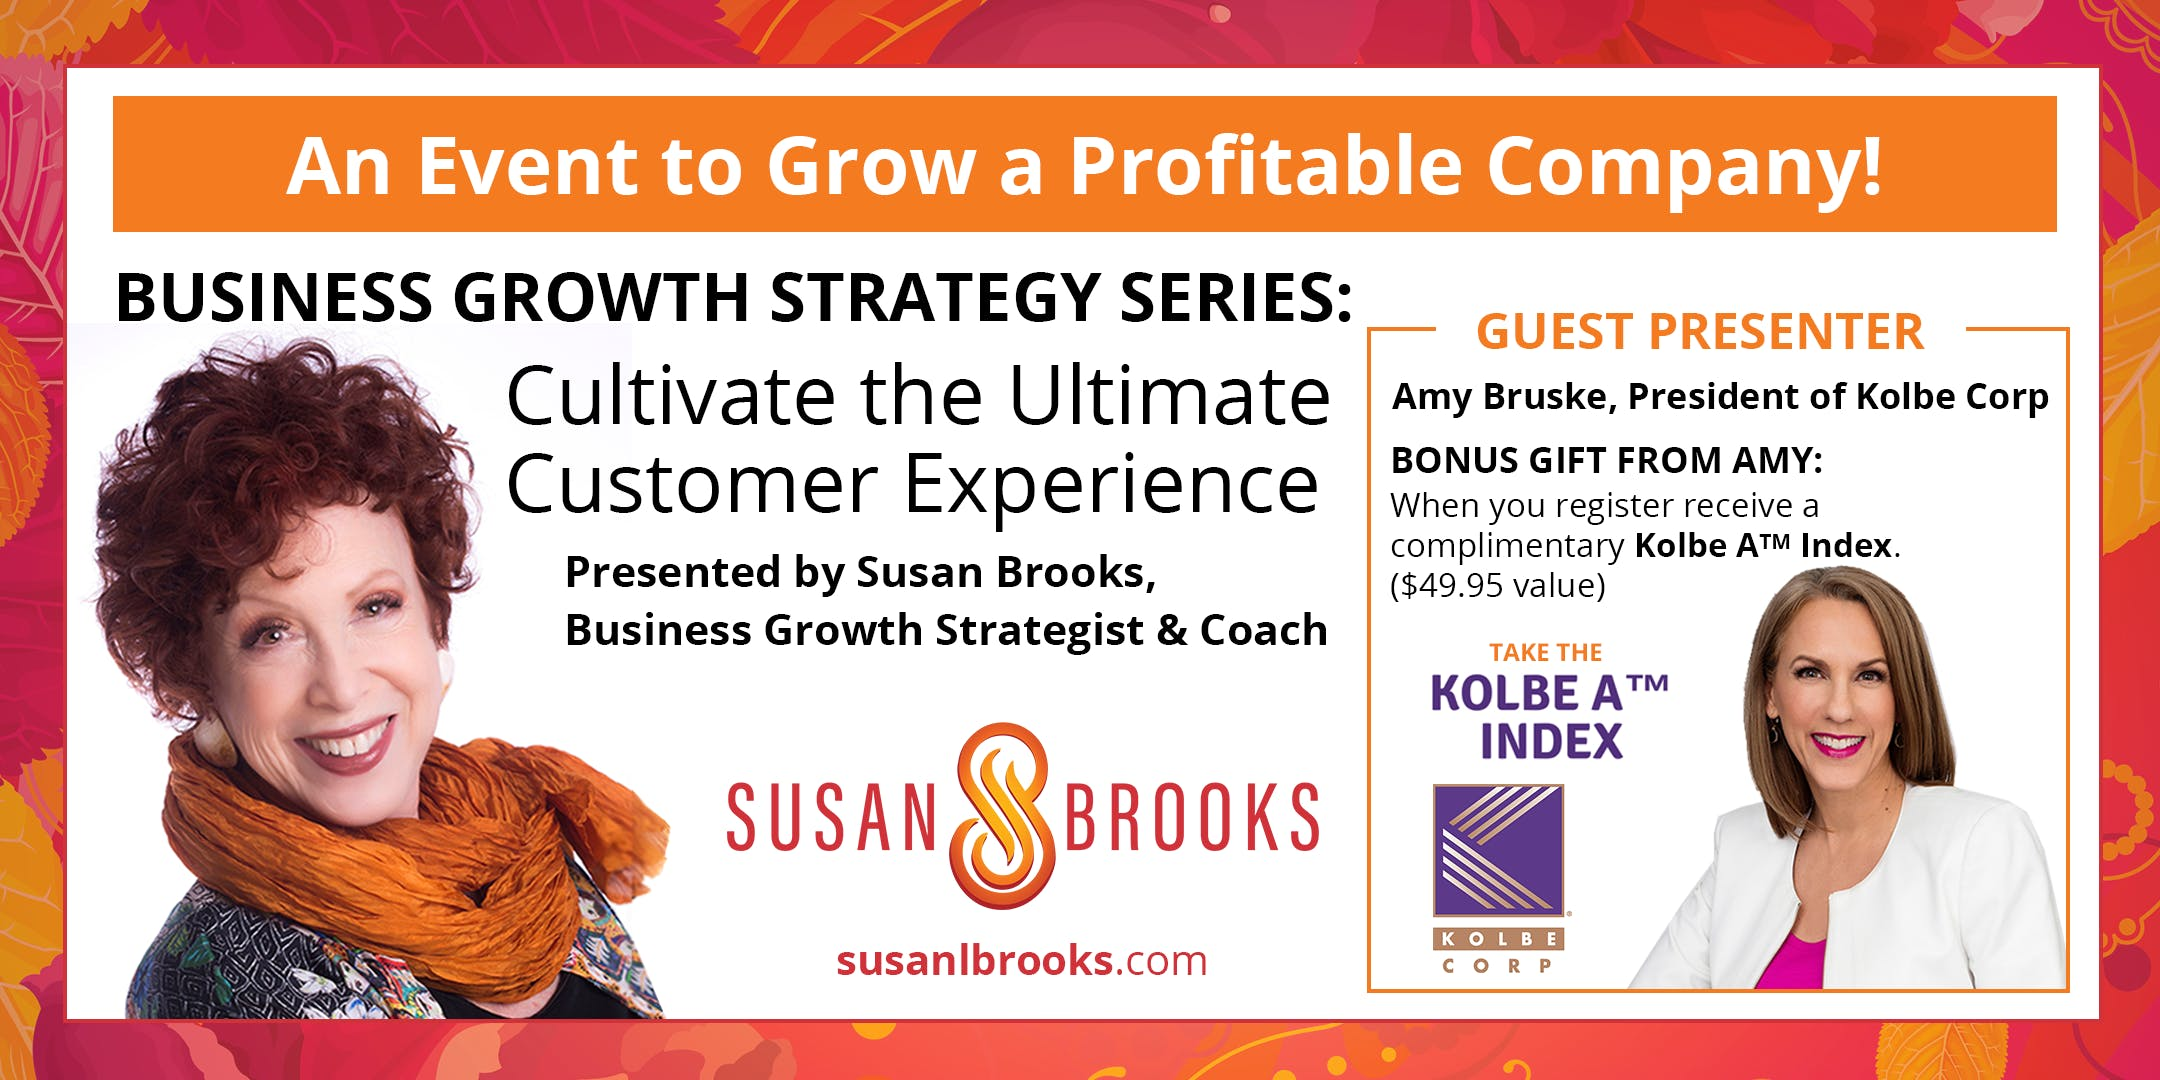 Business Growth Strategies: Cultivate the Ultimate Customer Experience!